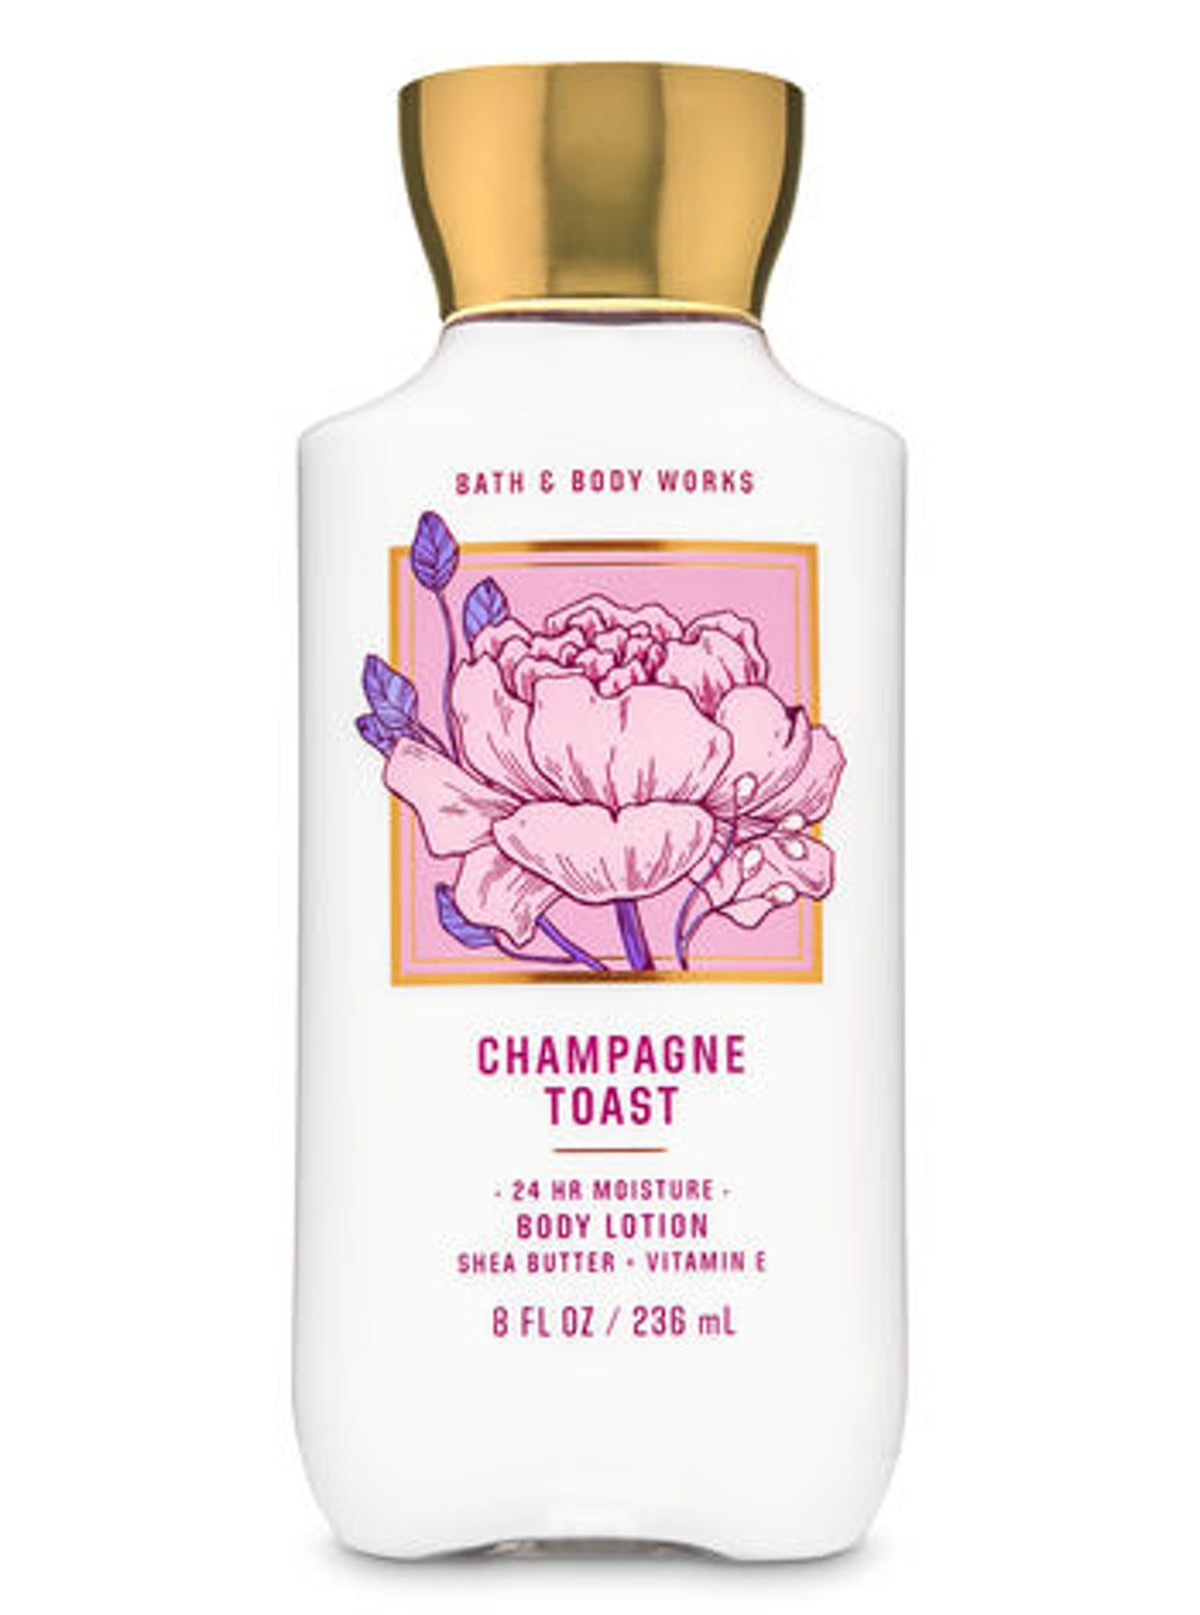 Bath & Body Works Champagne Toast Super Smooth Body Lotion